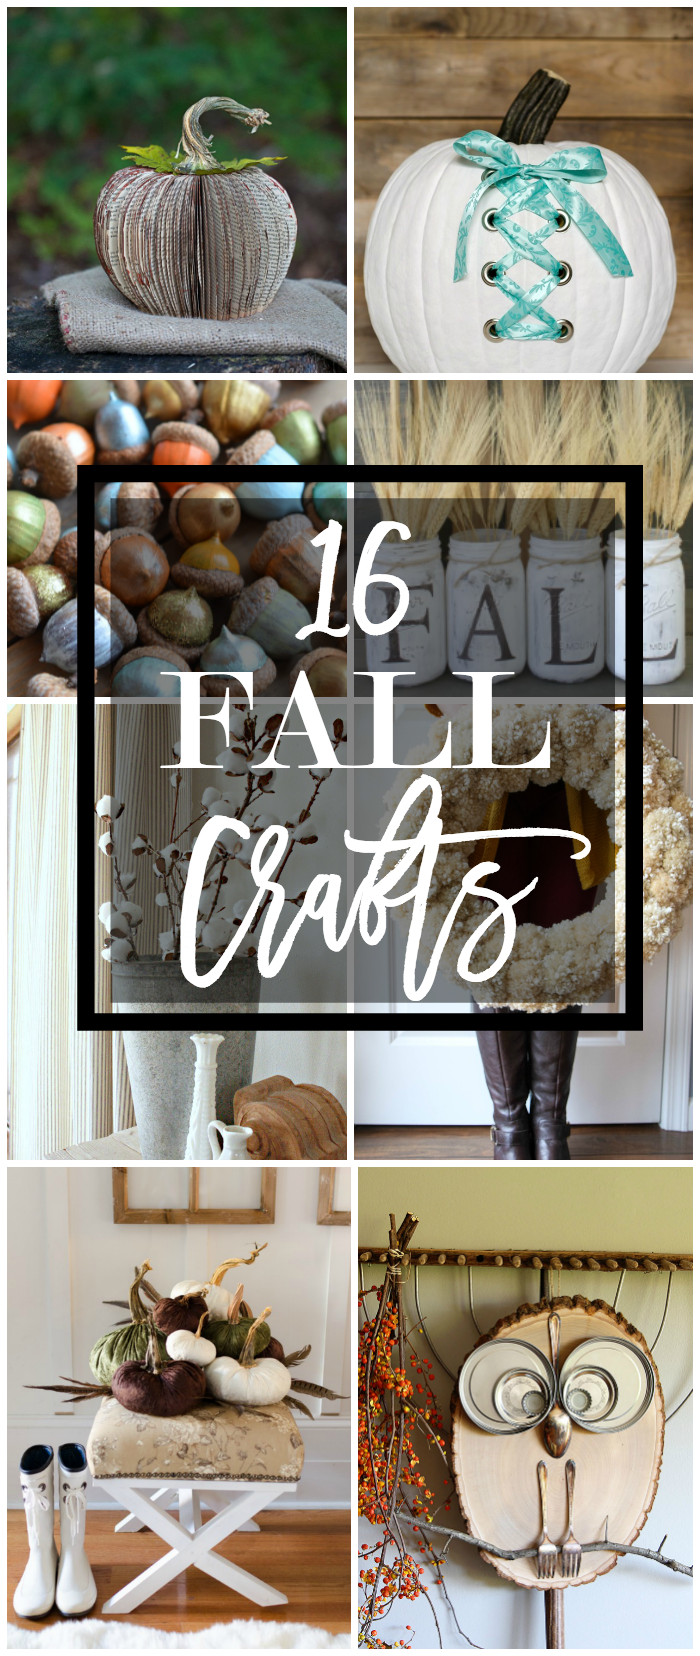 Best ideas about Fall Craft Ideas . Save or Pin 16 Fall Craft Ideas Now.